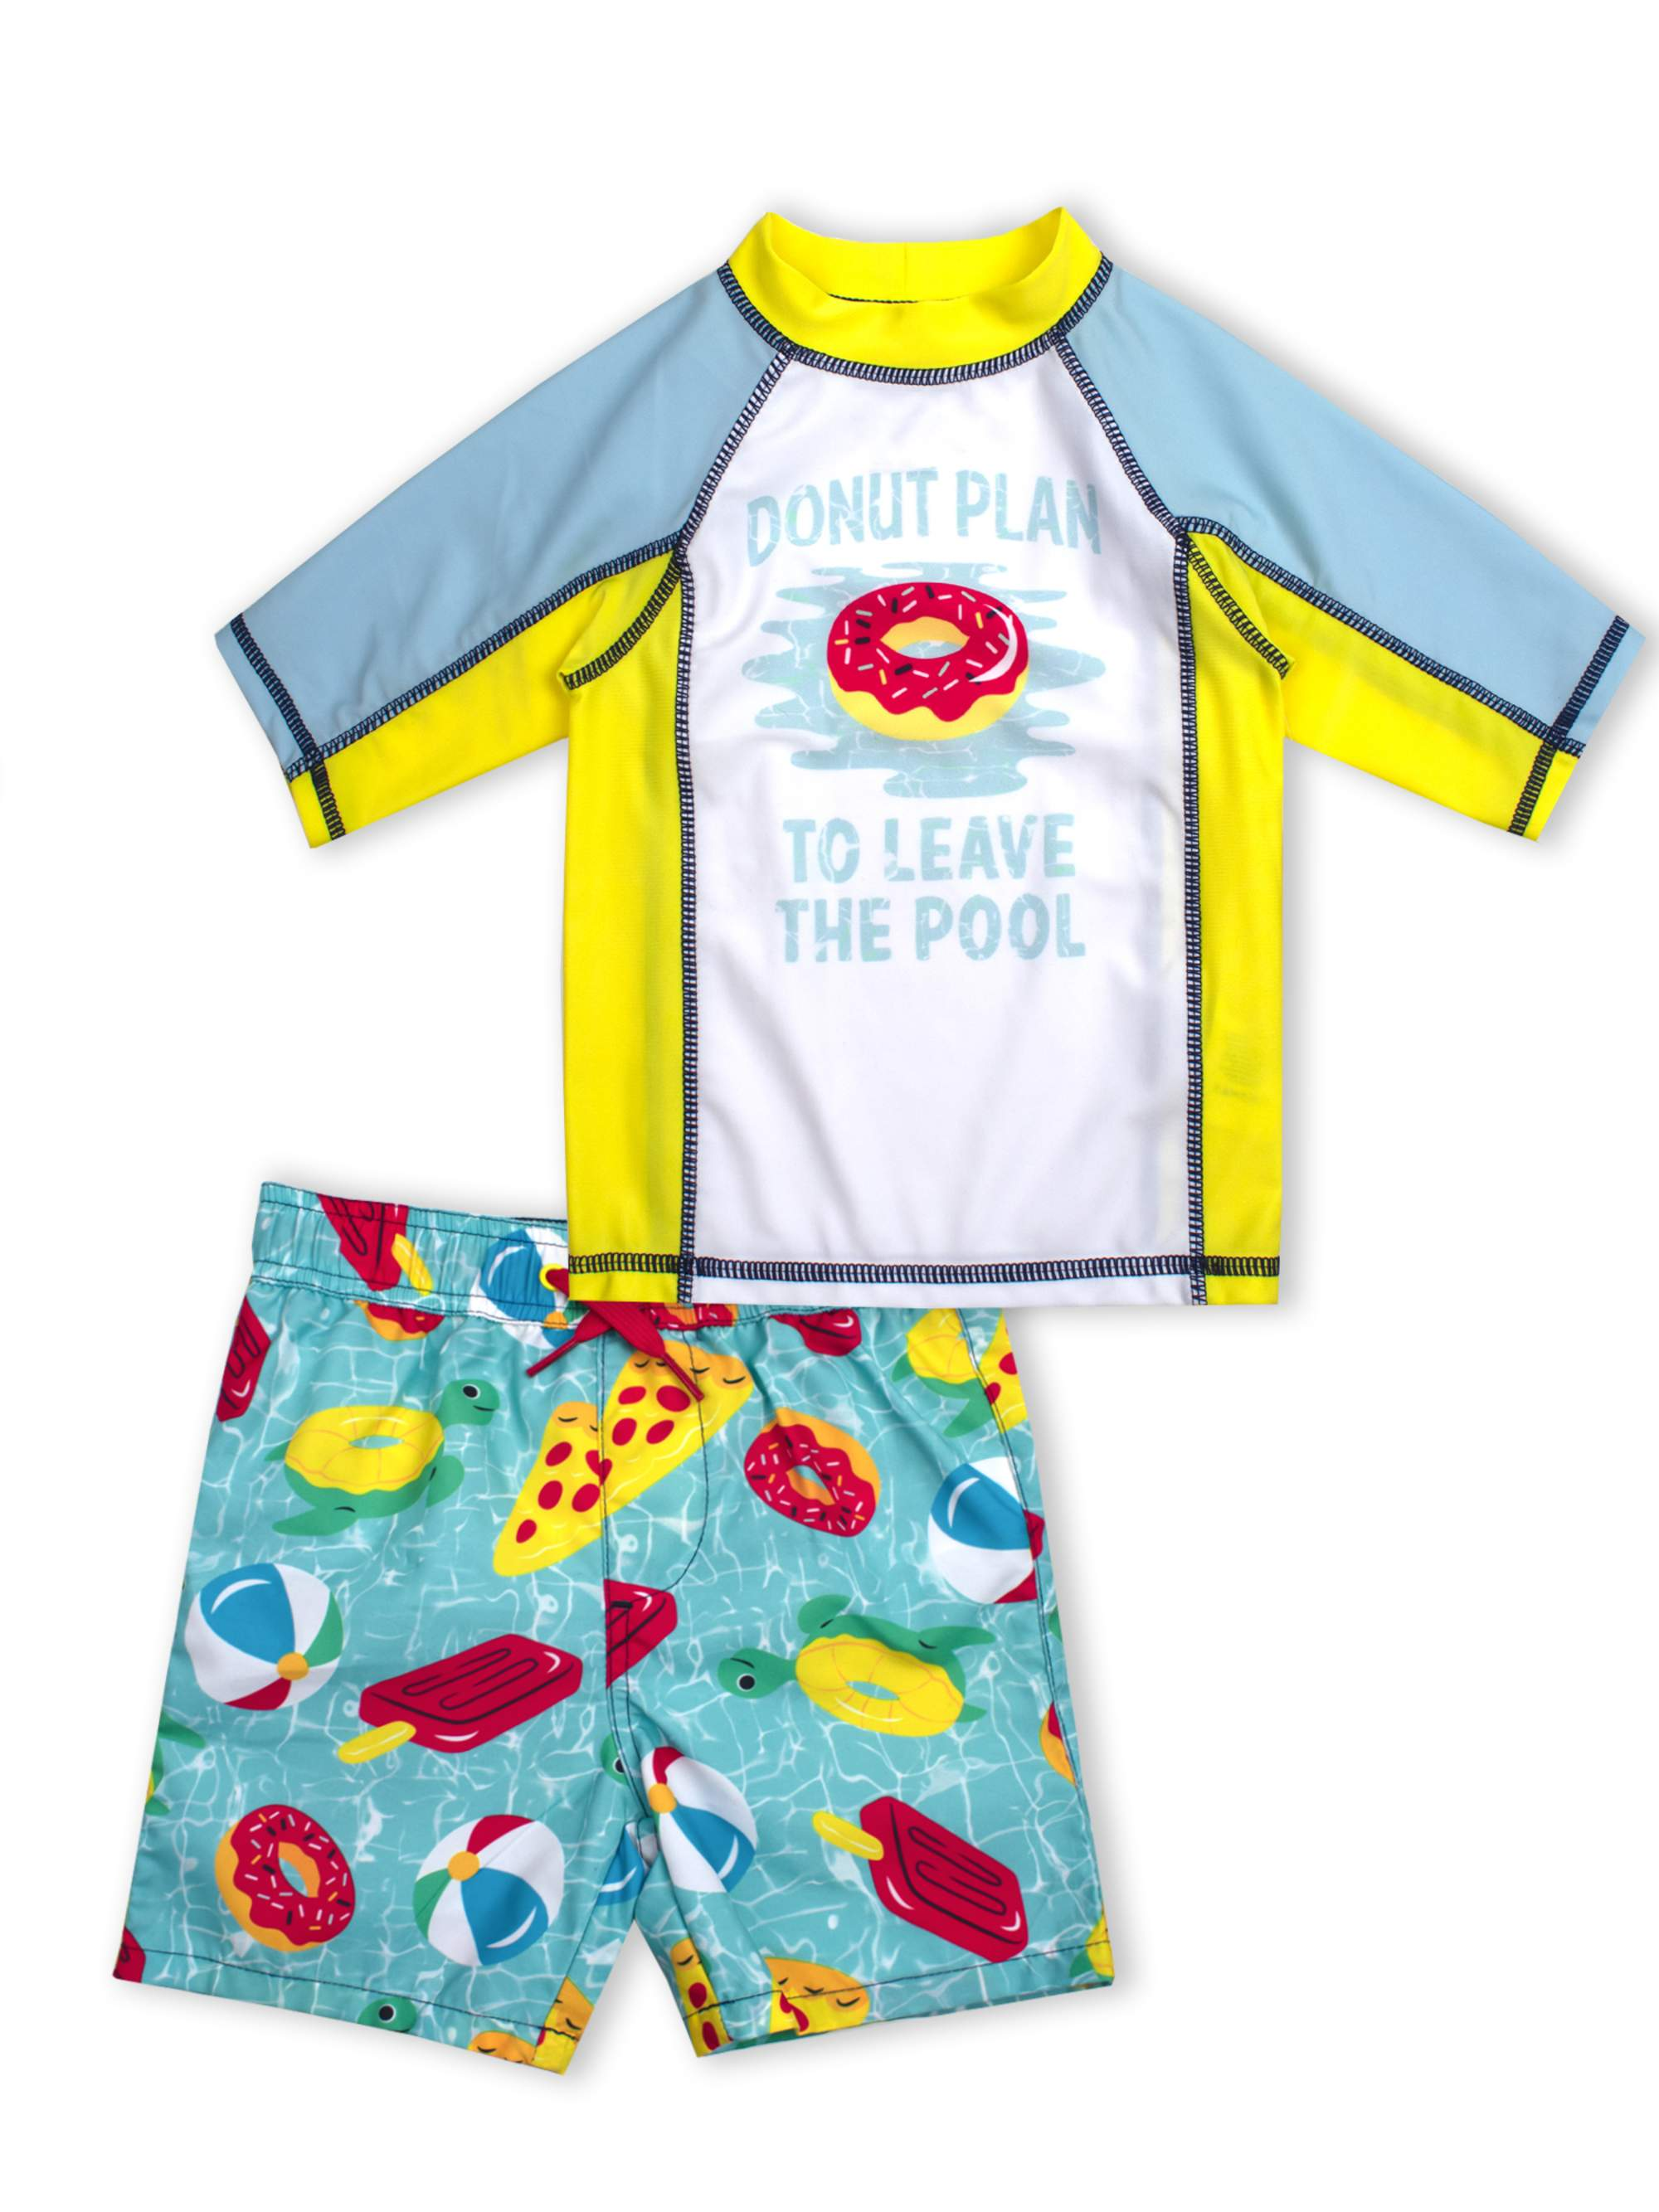 Donut Print Rash Guard and Swim Trunk, 2-Piece Outfit Set (Little Boys)